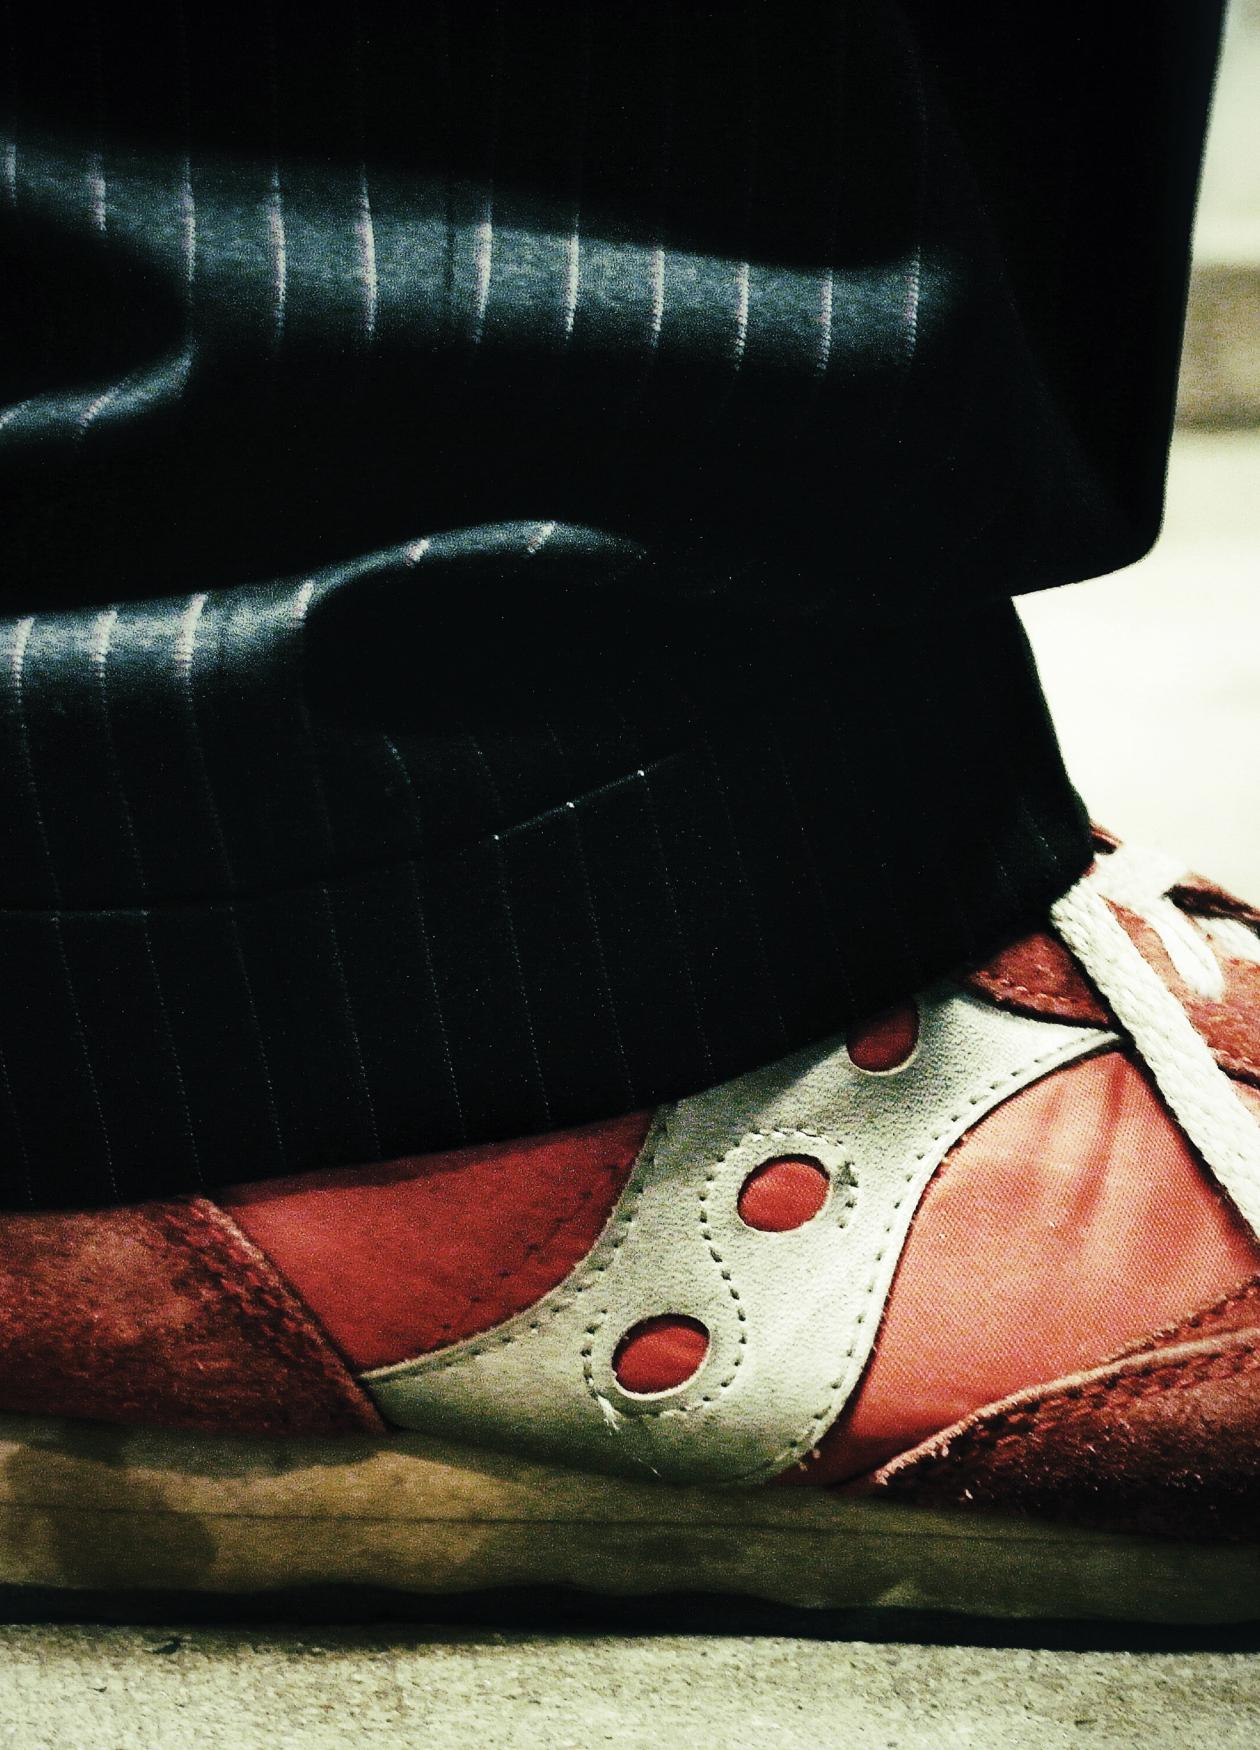 View of Garrison Keillor's shoes, red and grungy.